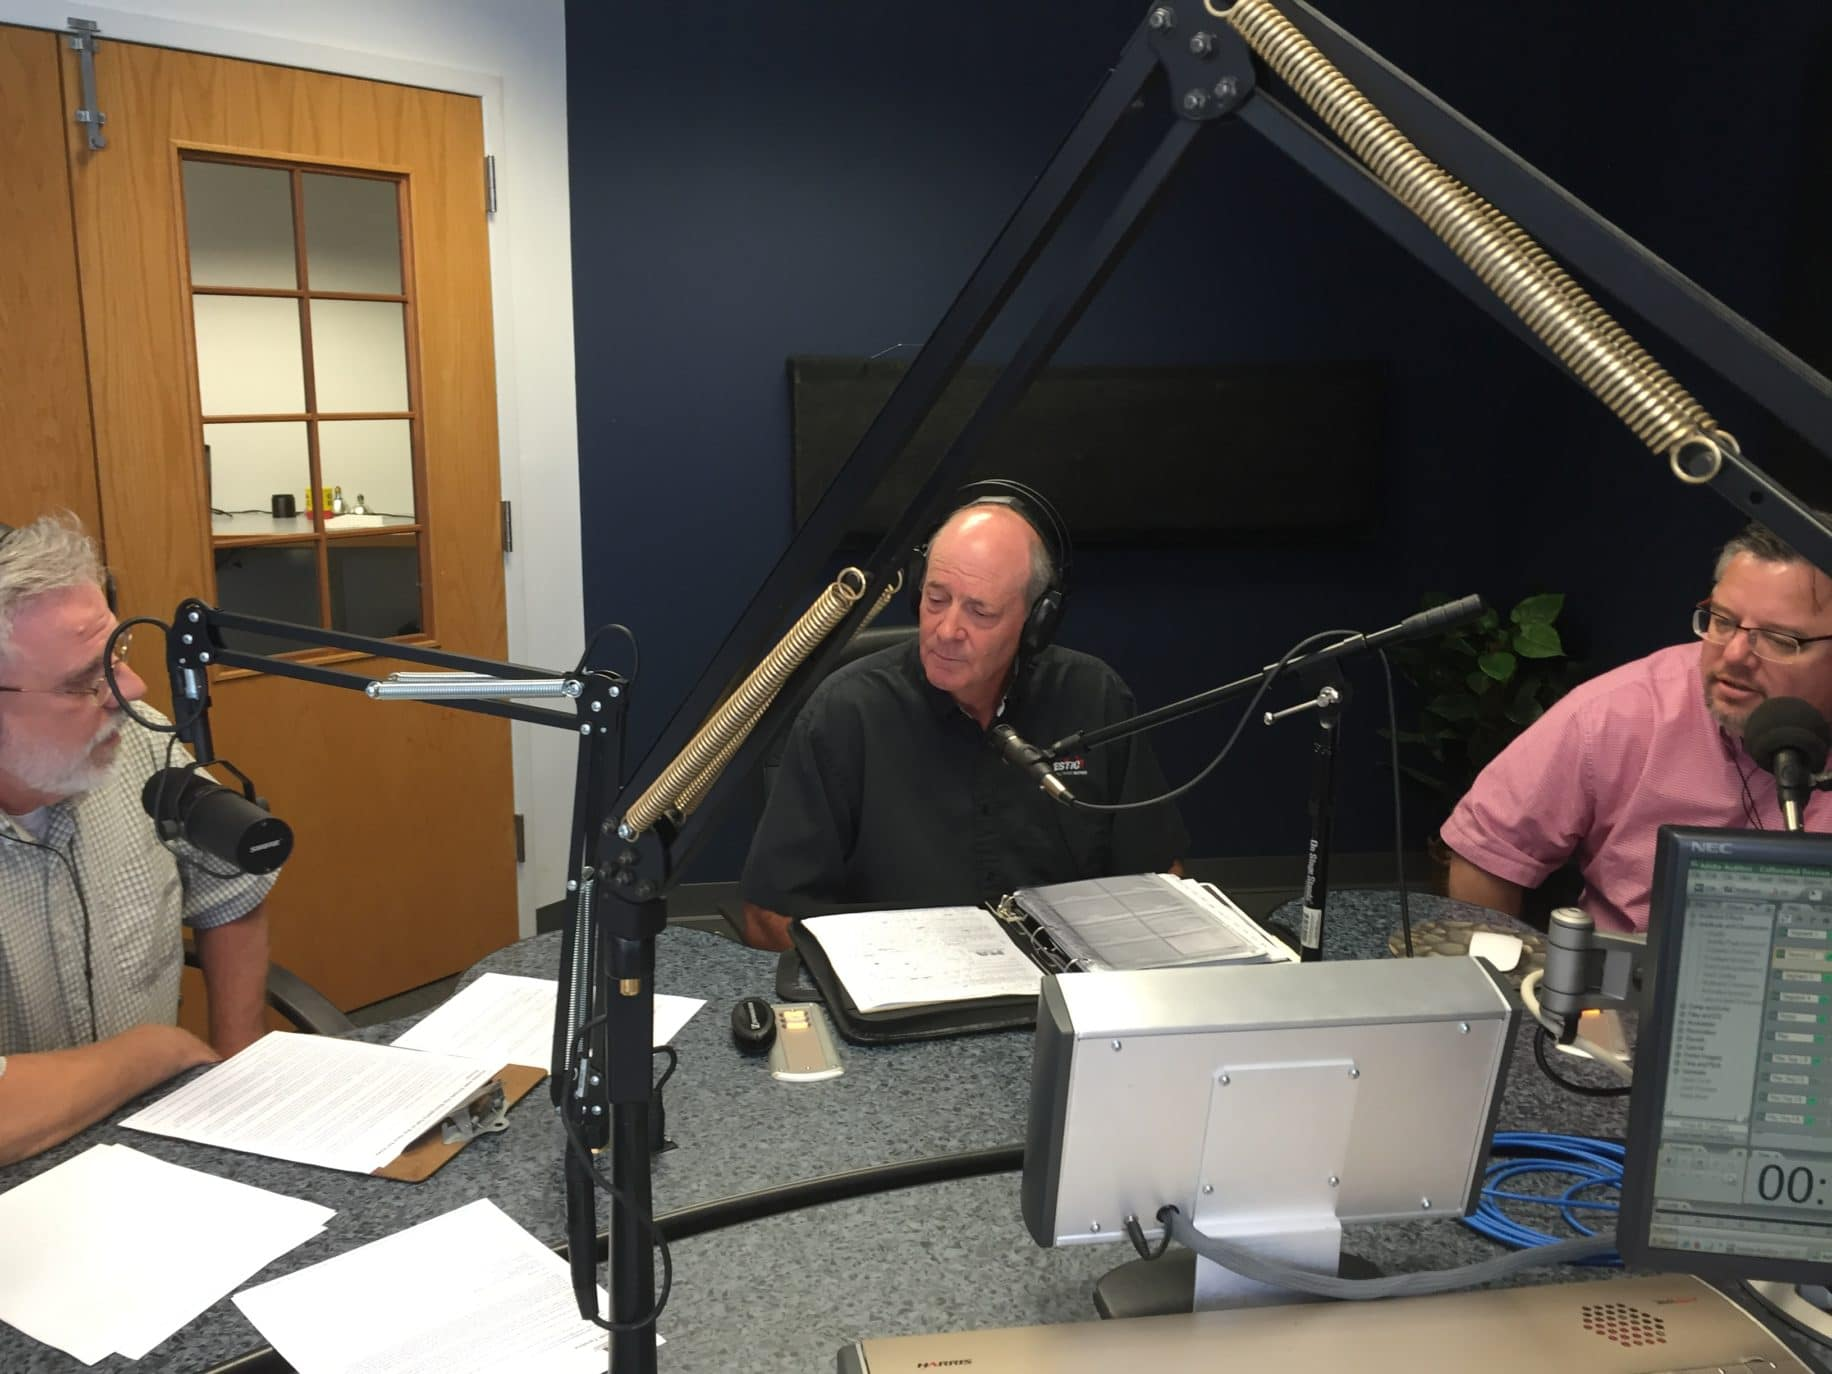 Brian Myers, guest Mike Knox, and Shane Vander Hart in the 99.3fm The Truth's studio. Photo credit: Ron Carlson